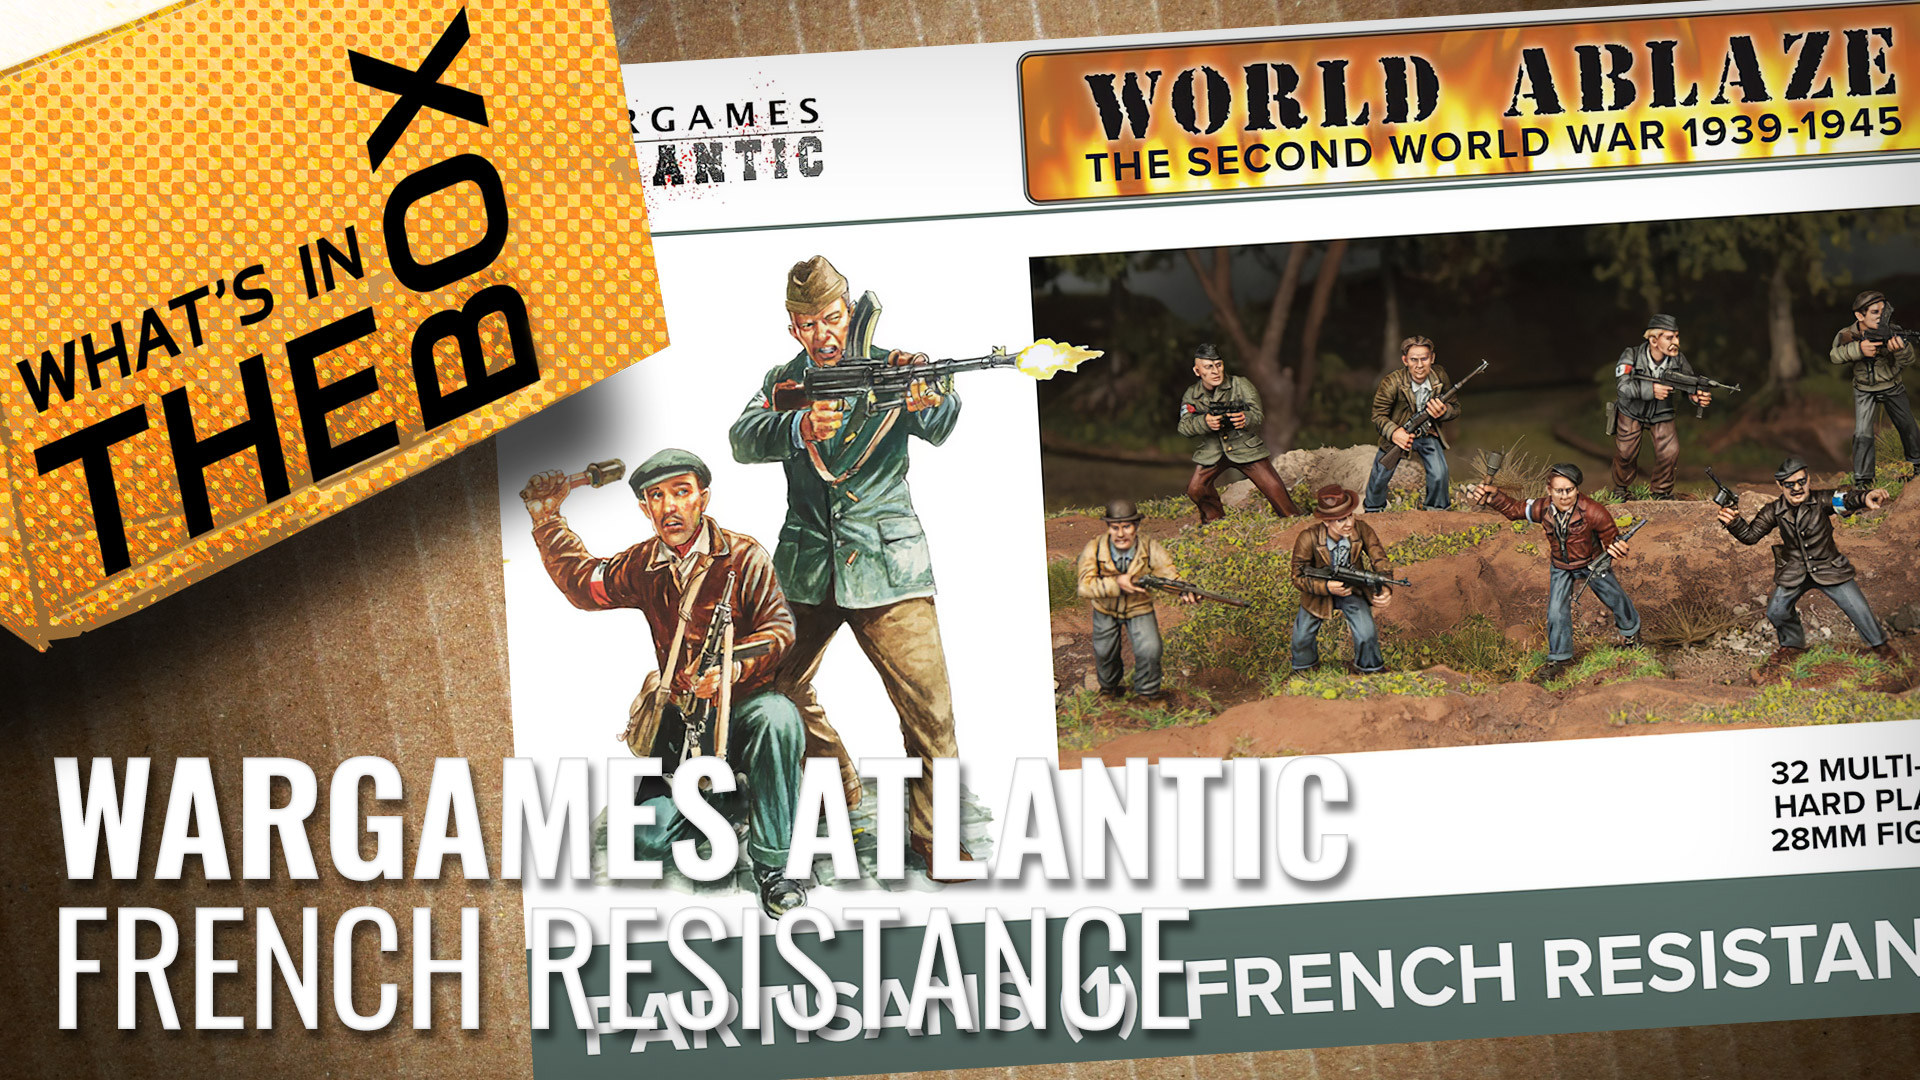 Wargames-Atlantic-French-Resistence-coverimage